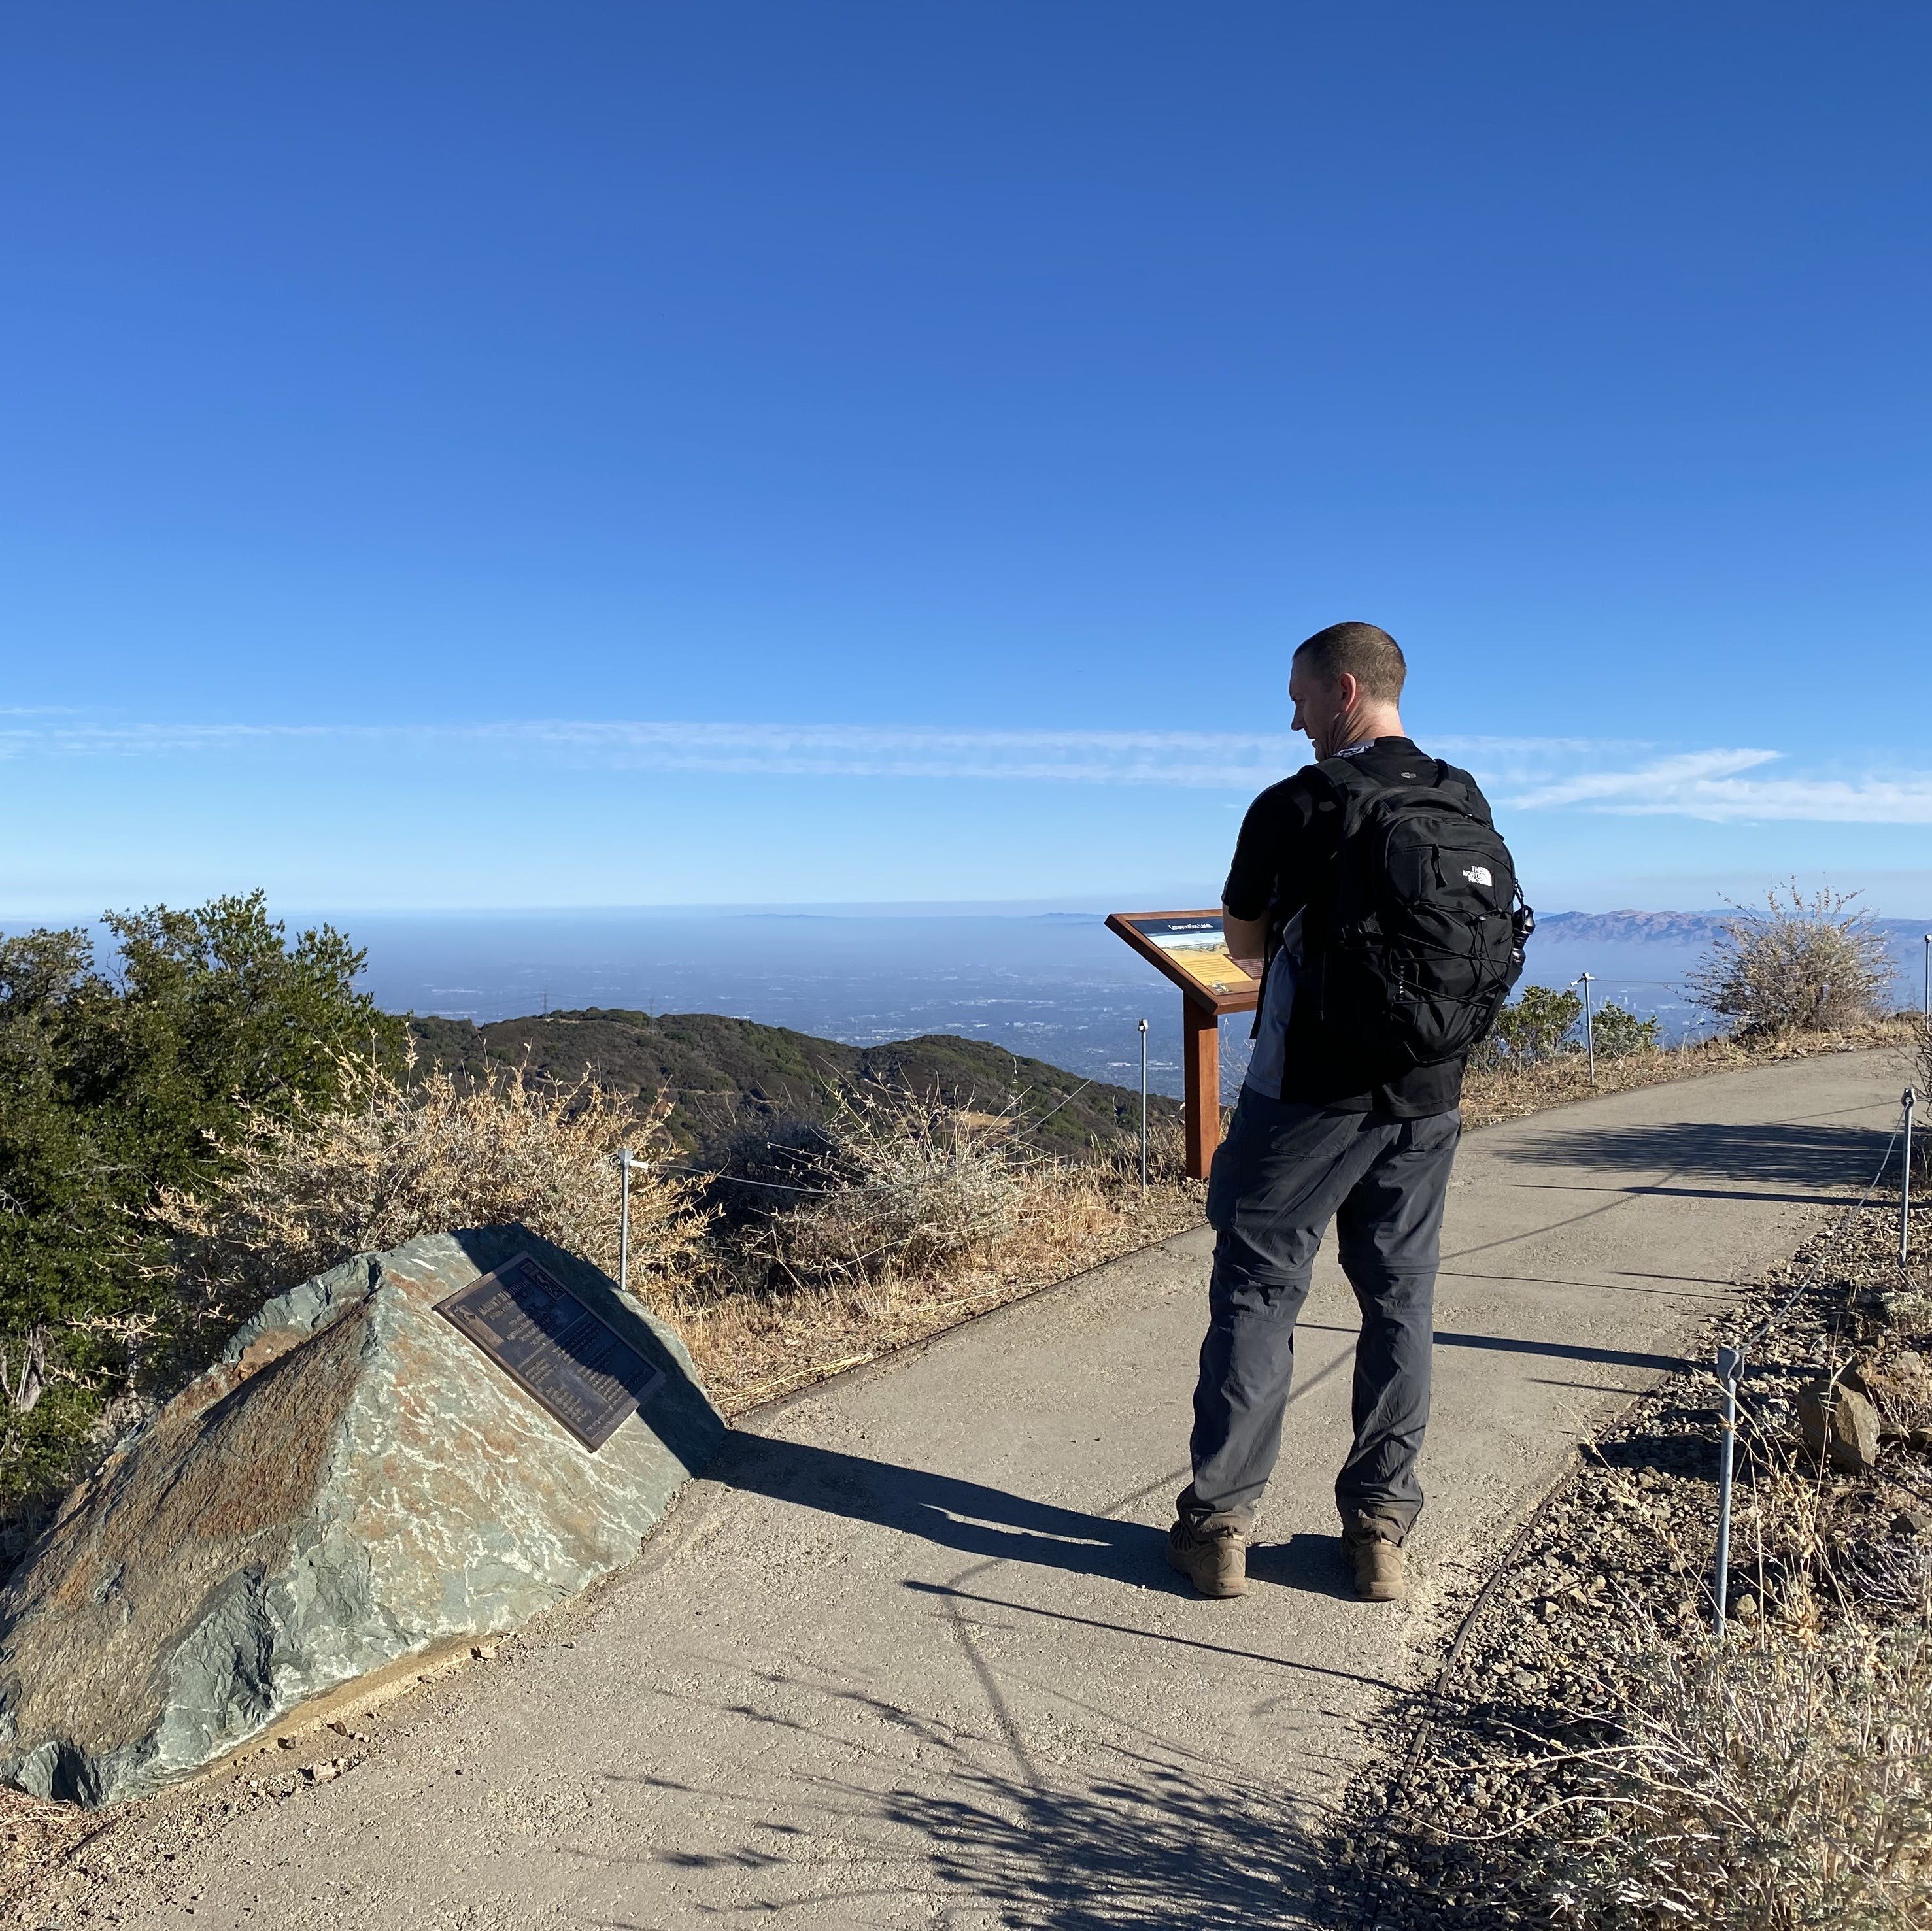 Hiker at the summit of Mount Umunhum in the South Bay